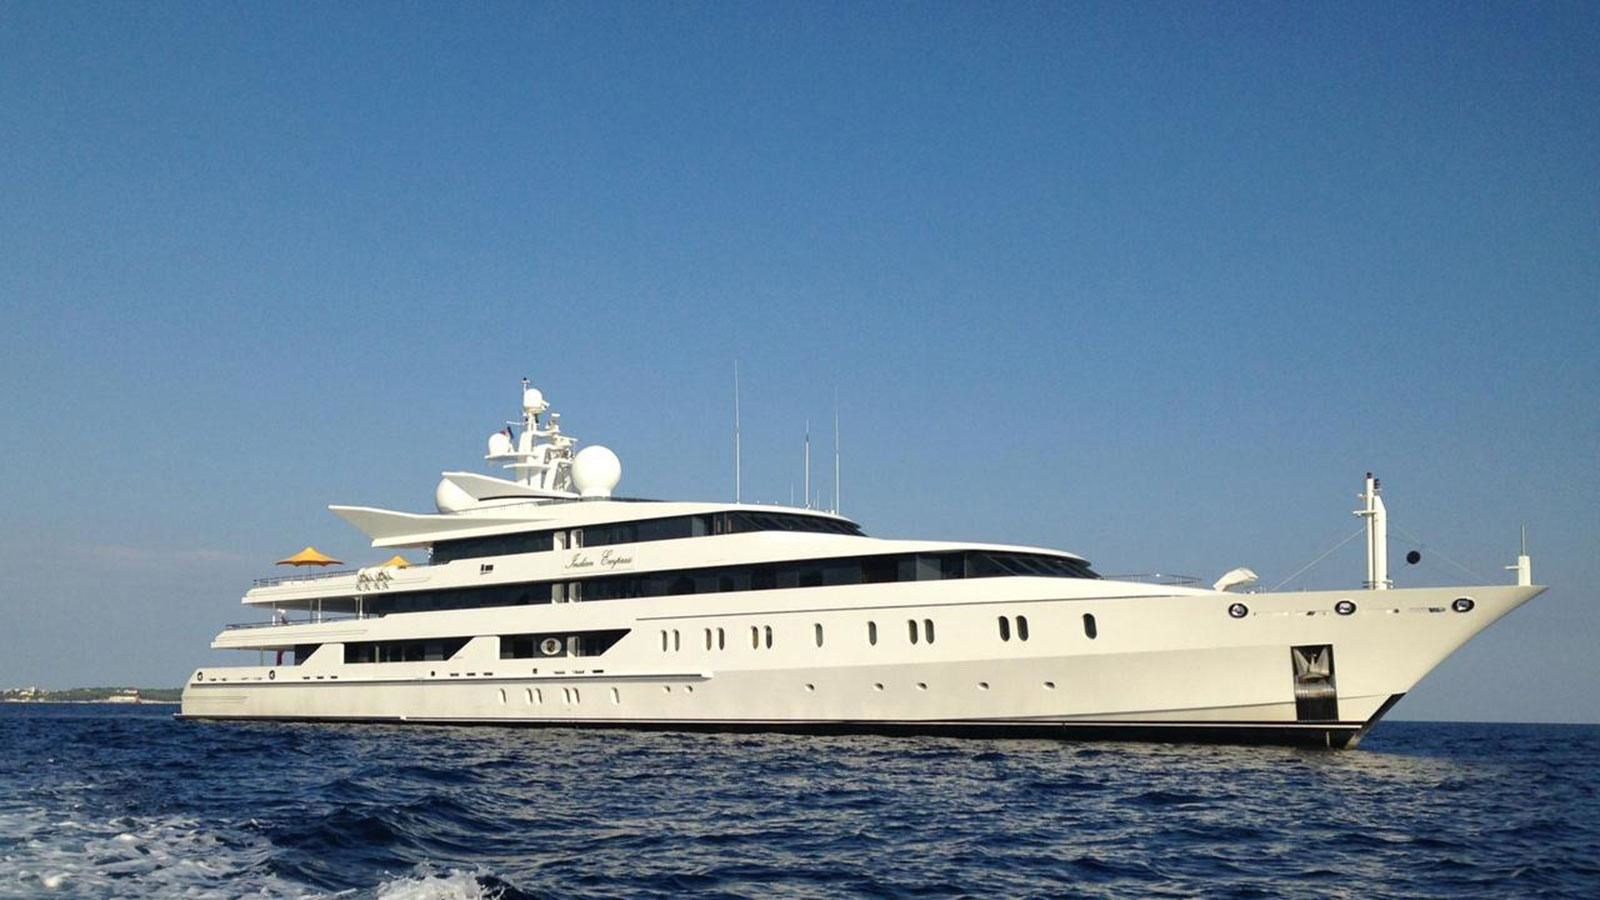 Le superyacht avant son abandon